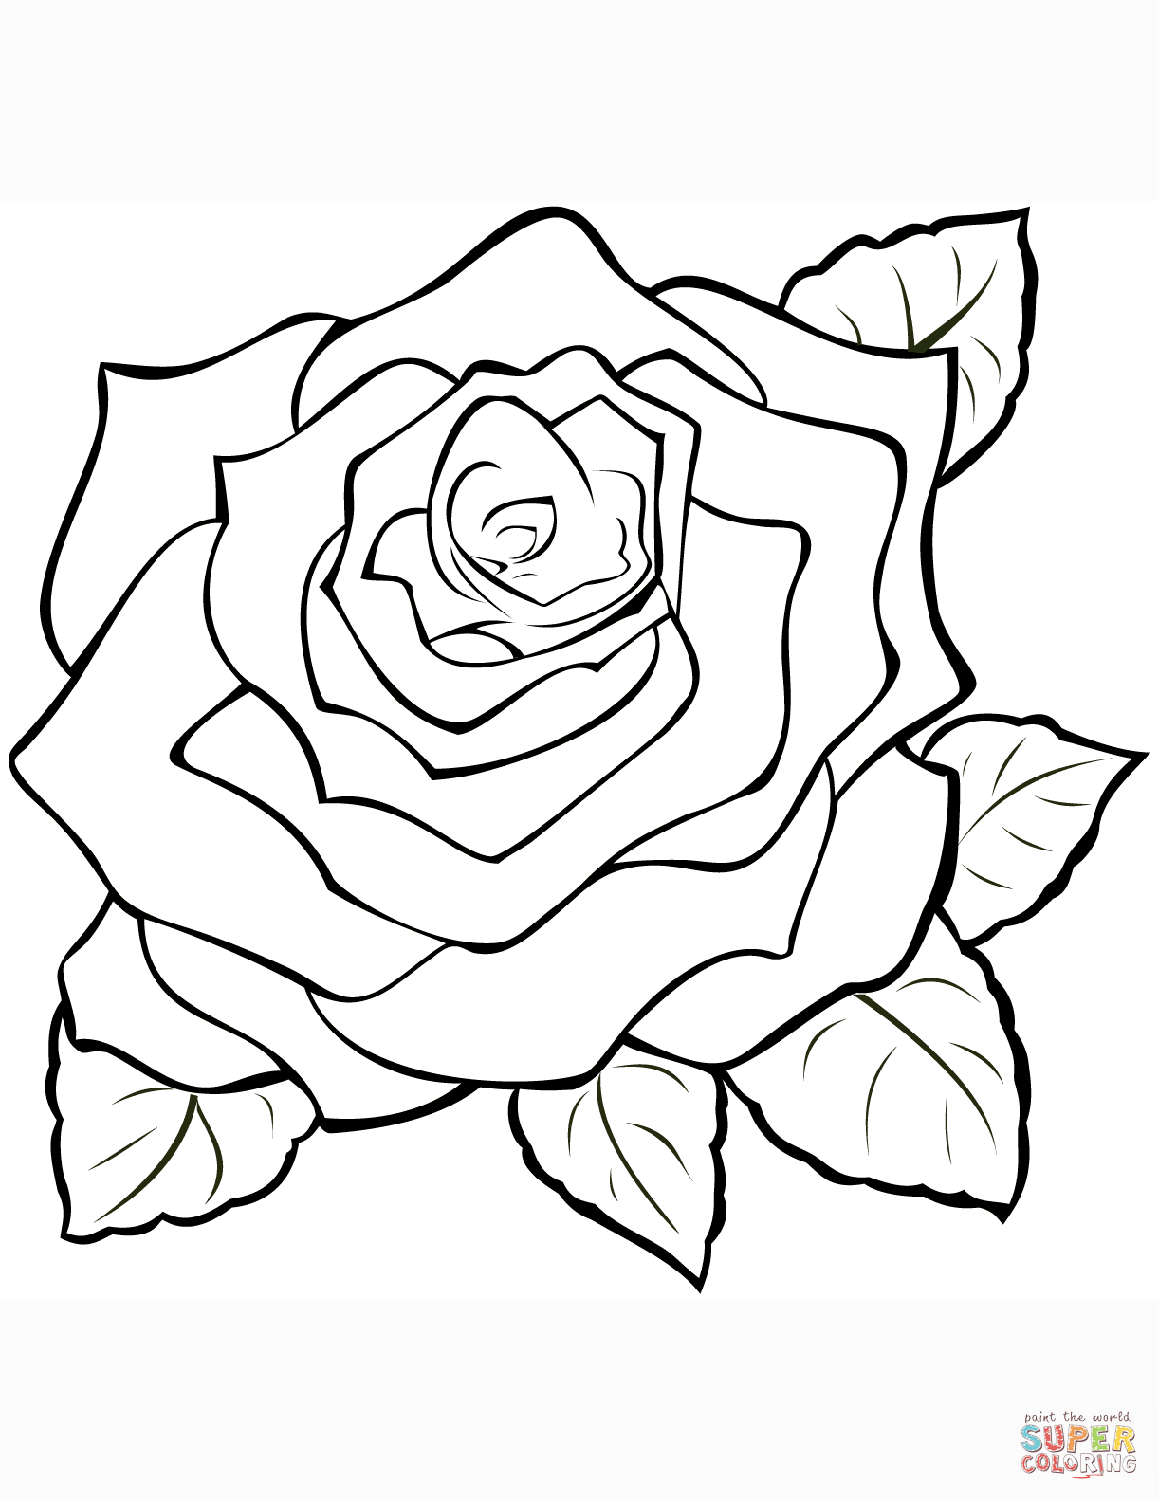 coloring picture rose rose coloring page free printable coloring pages rose picture coloring